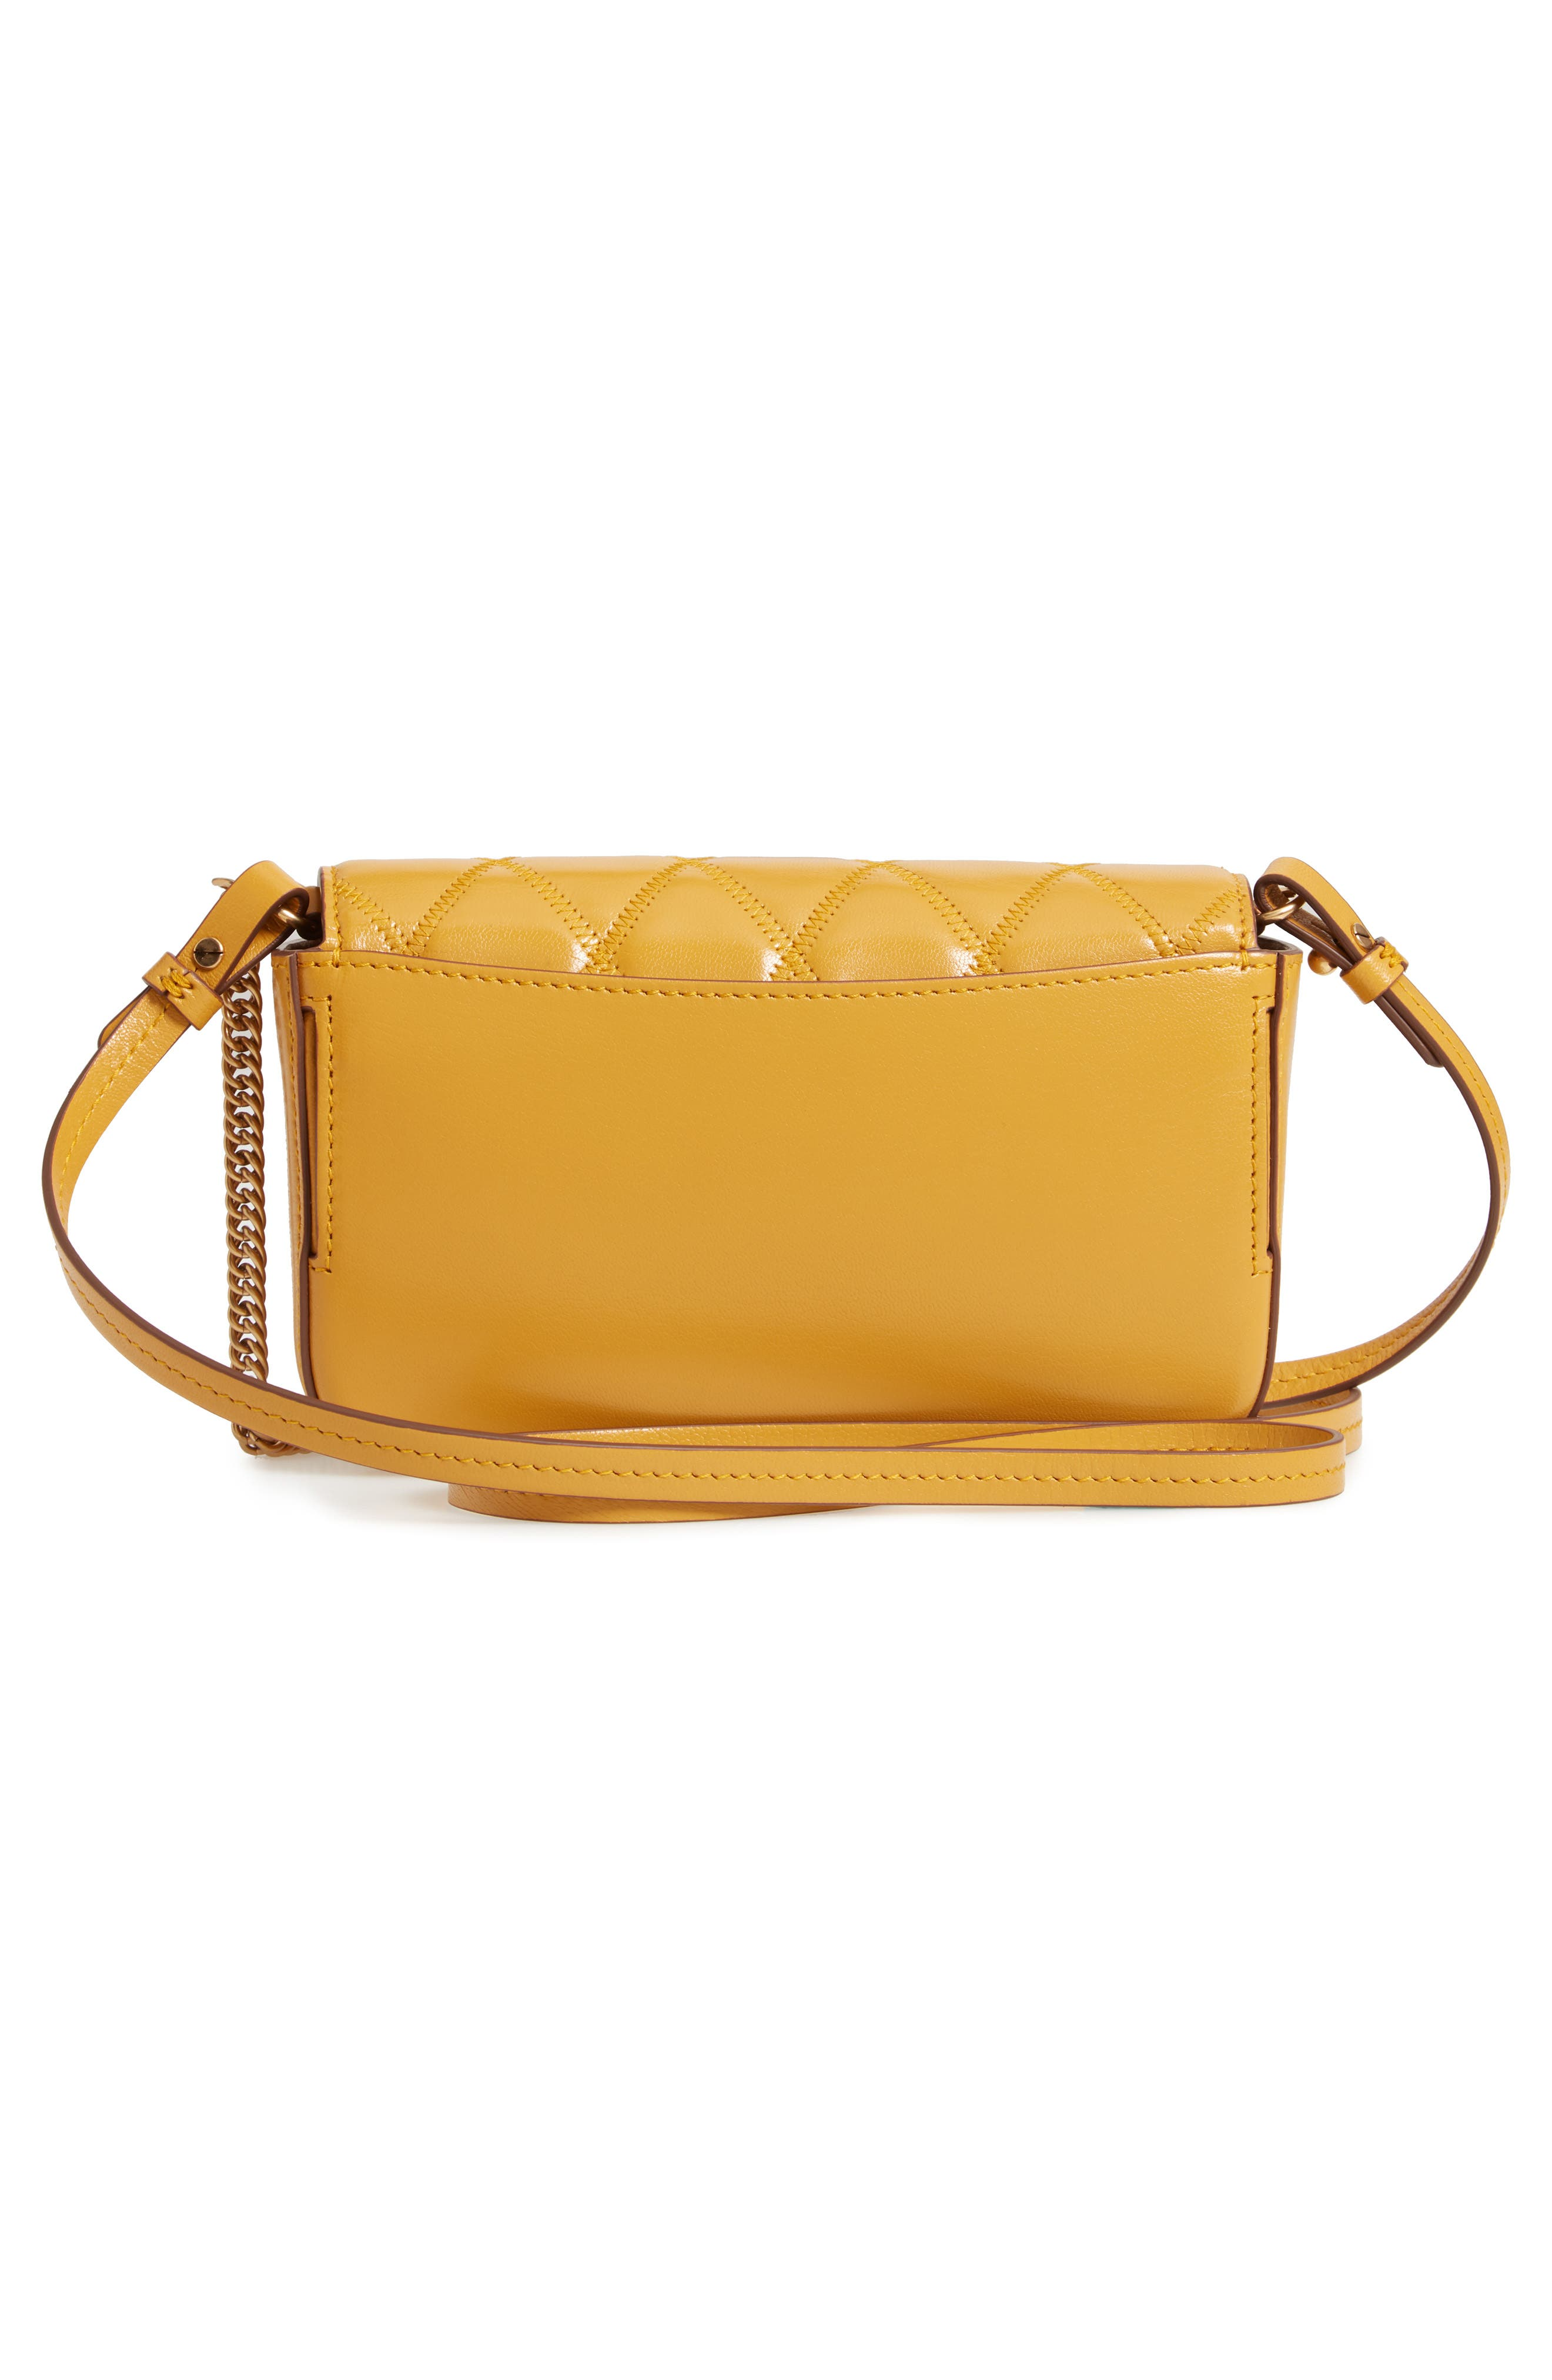 Mini Pocket Quilted Convertible Leather Bag,                             Alternate thumbnail 4, color,                             GOLDEN